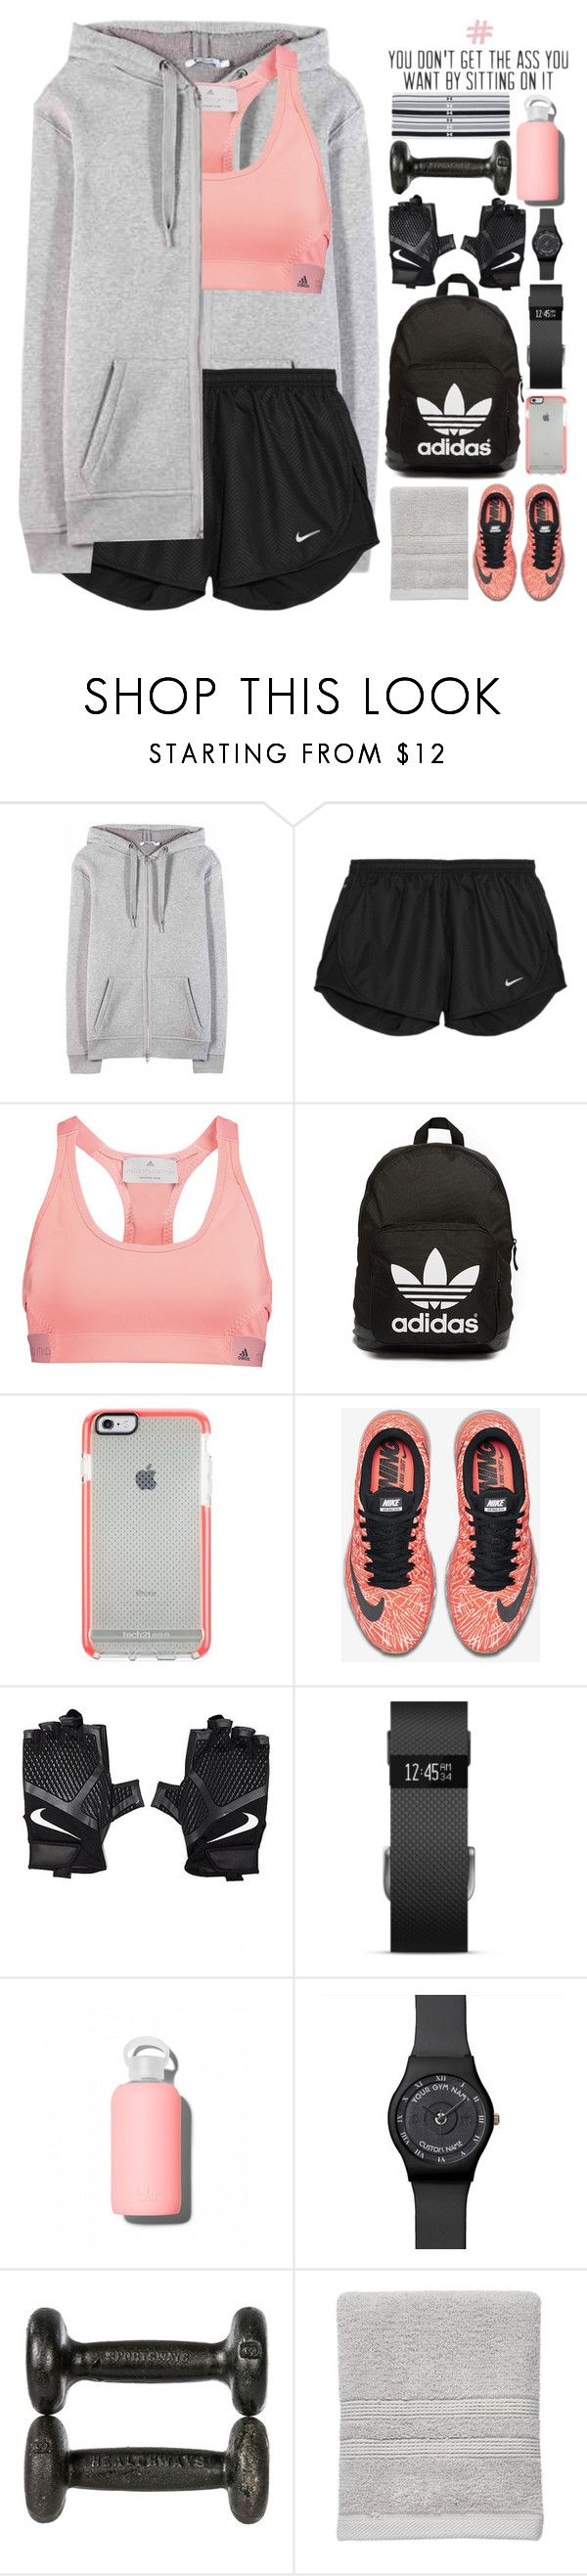 """#805 Fitness."" by giulls1 ❤ liked on Polyvore featuring T By Alexander Wang, NIKE, adidas, adidas Originals, Fitbit, bkr, Sonoma life + style, Under Armour, women's clothing and women"